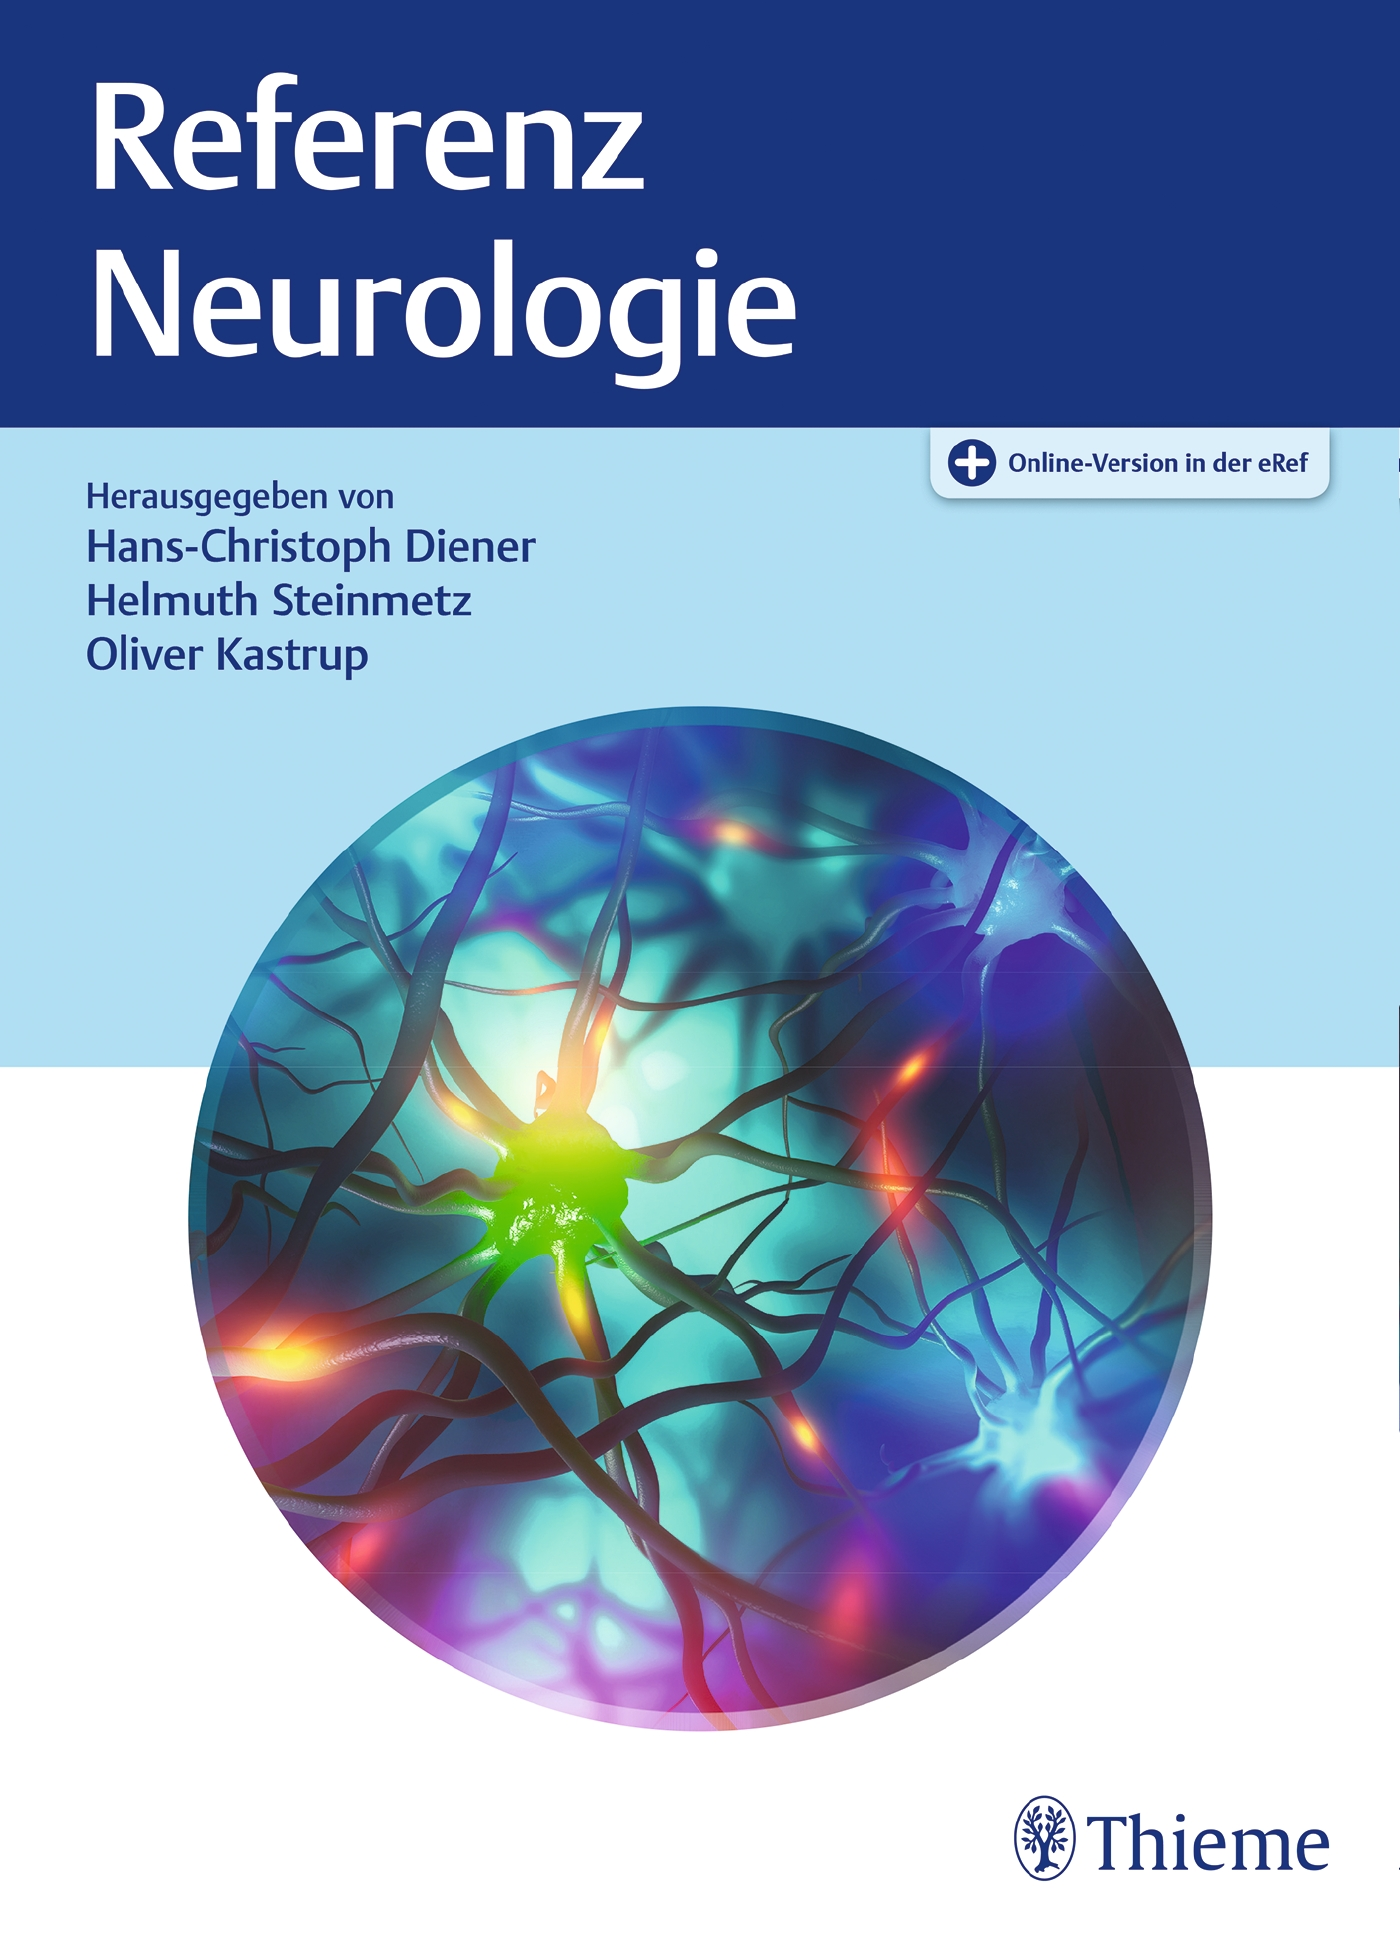 Referenz Neurologie